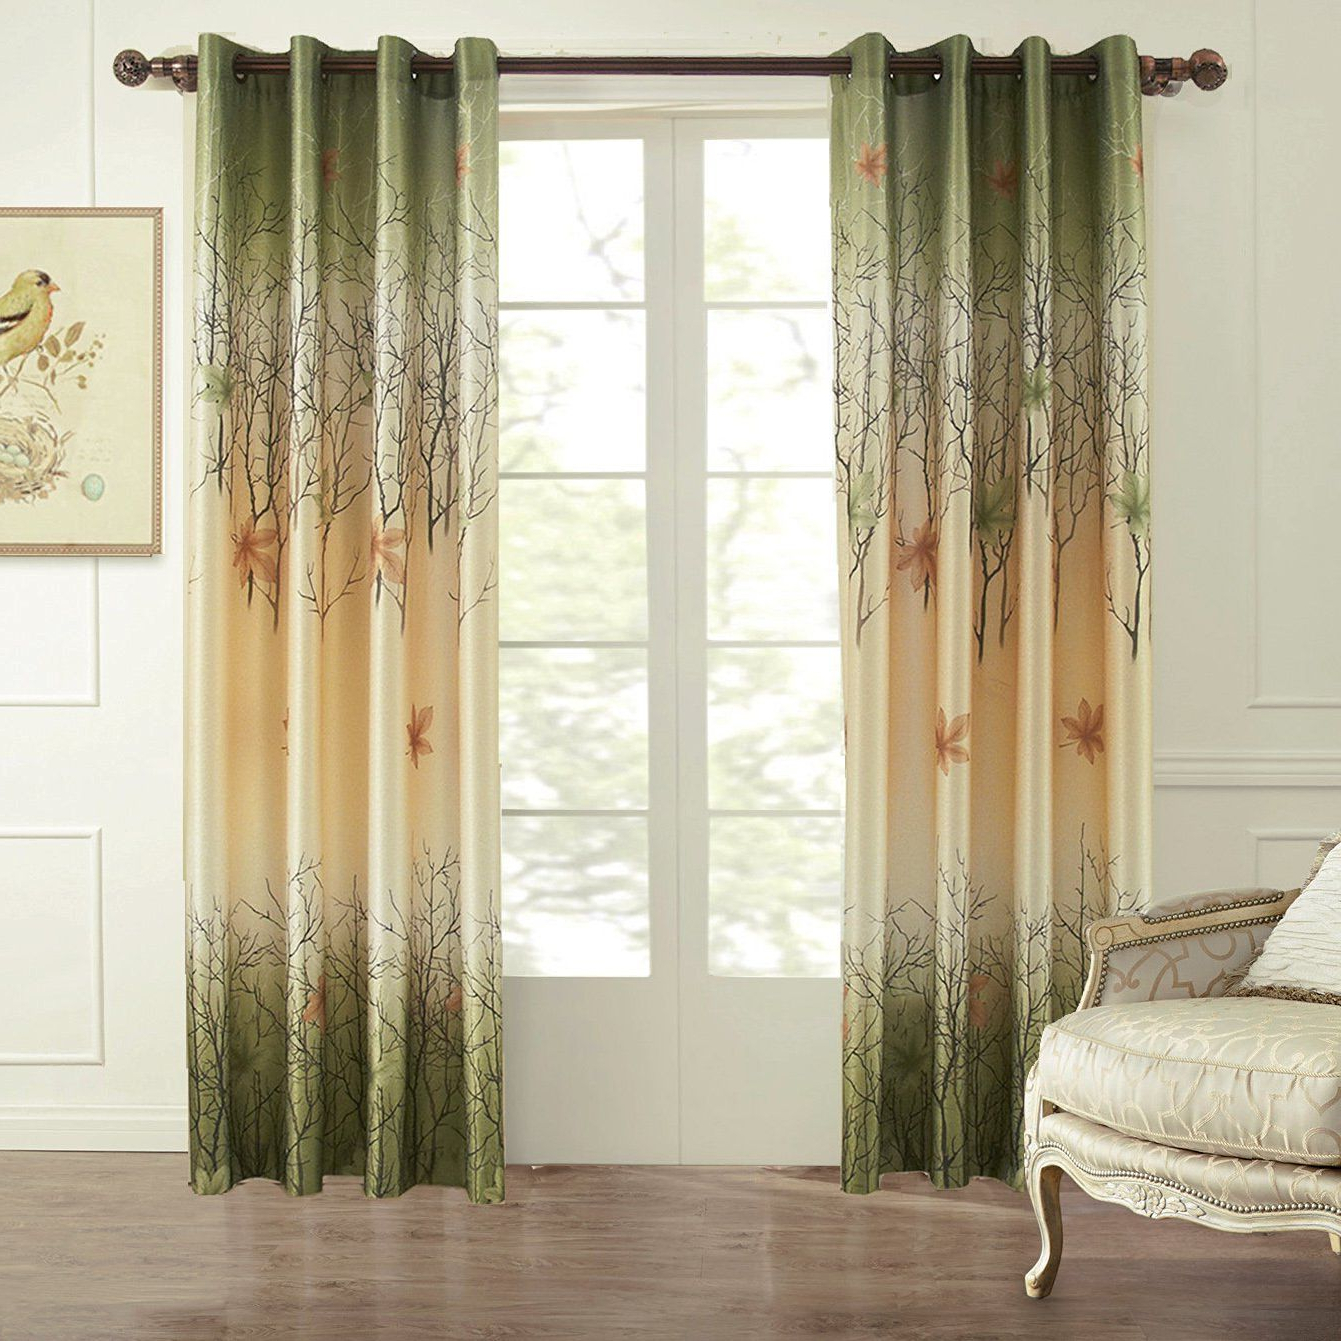 Amazon: Koting Home Fashion Set Of 2 Panels/pair,green Pertaining To Latest Floral Watercolor Semi Sheer Rod Pocket Kitchen Curtain Valance And Tiers Sets (View 1 of 20)